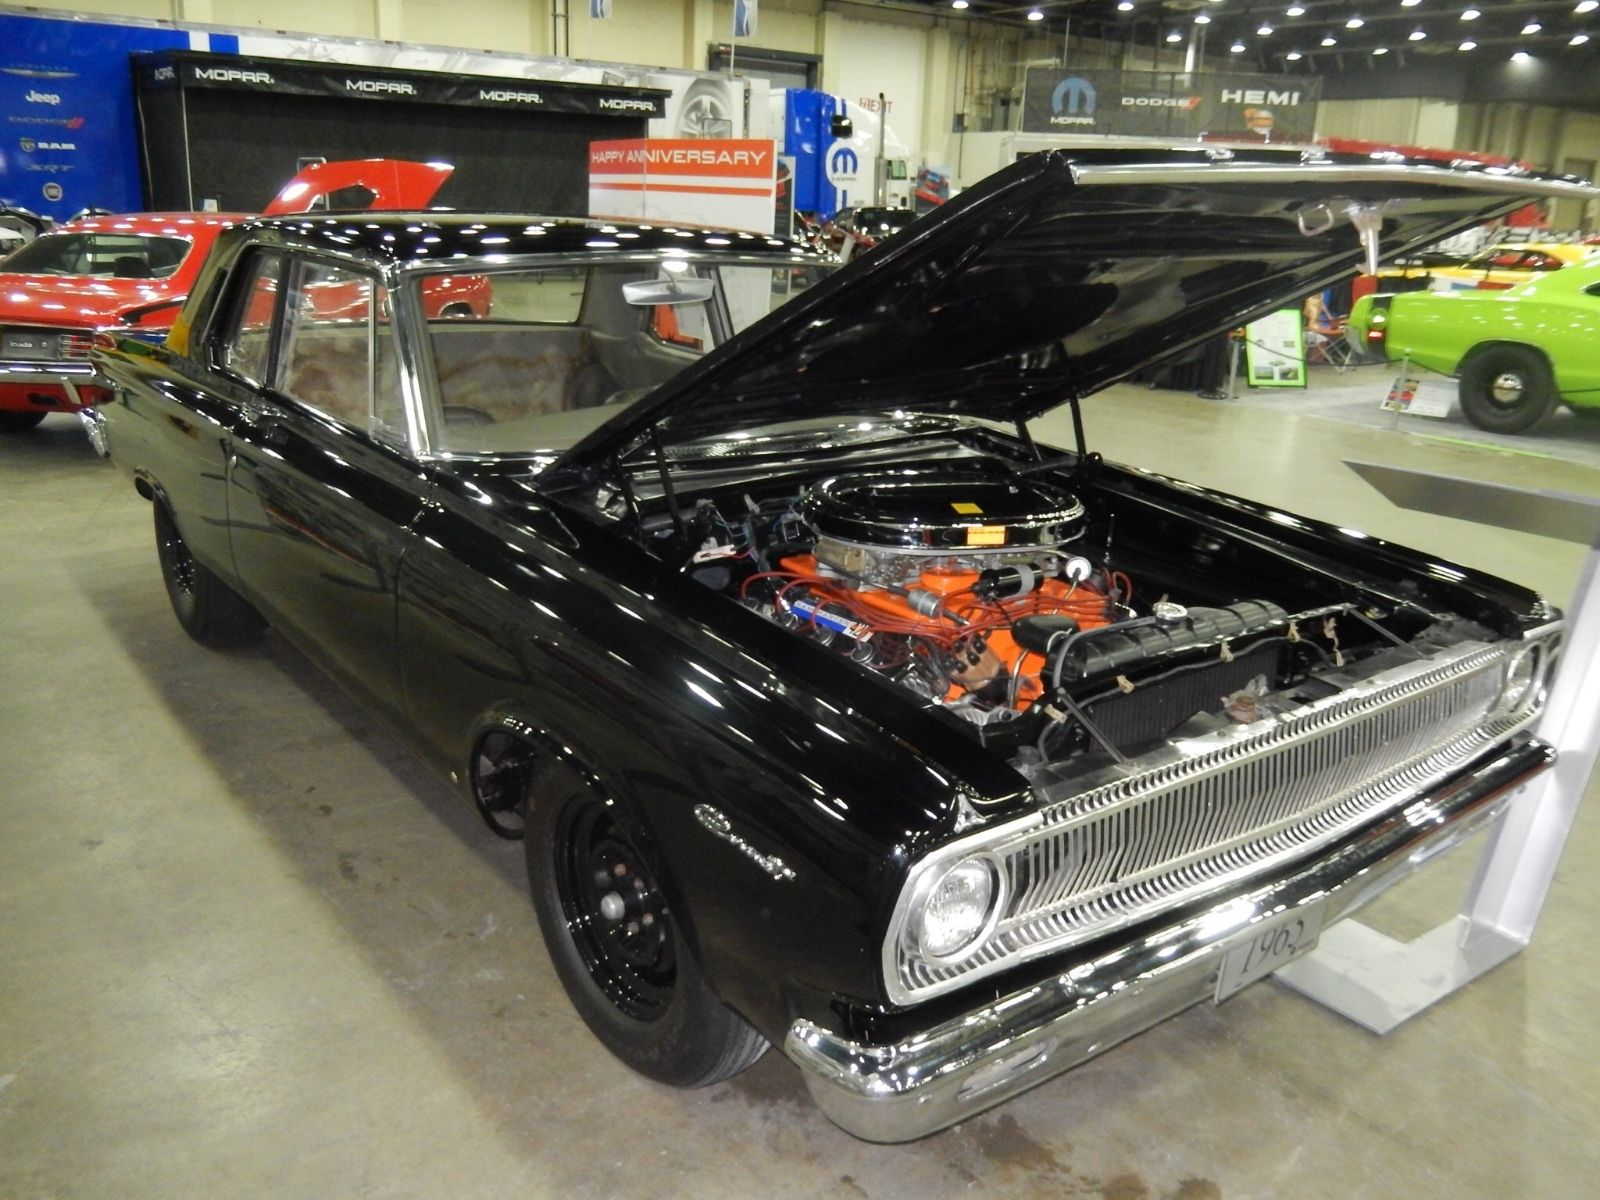 1965 Dodge Coronet S/S super stock for sale in Fayetteville, North ...